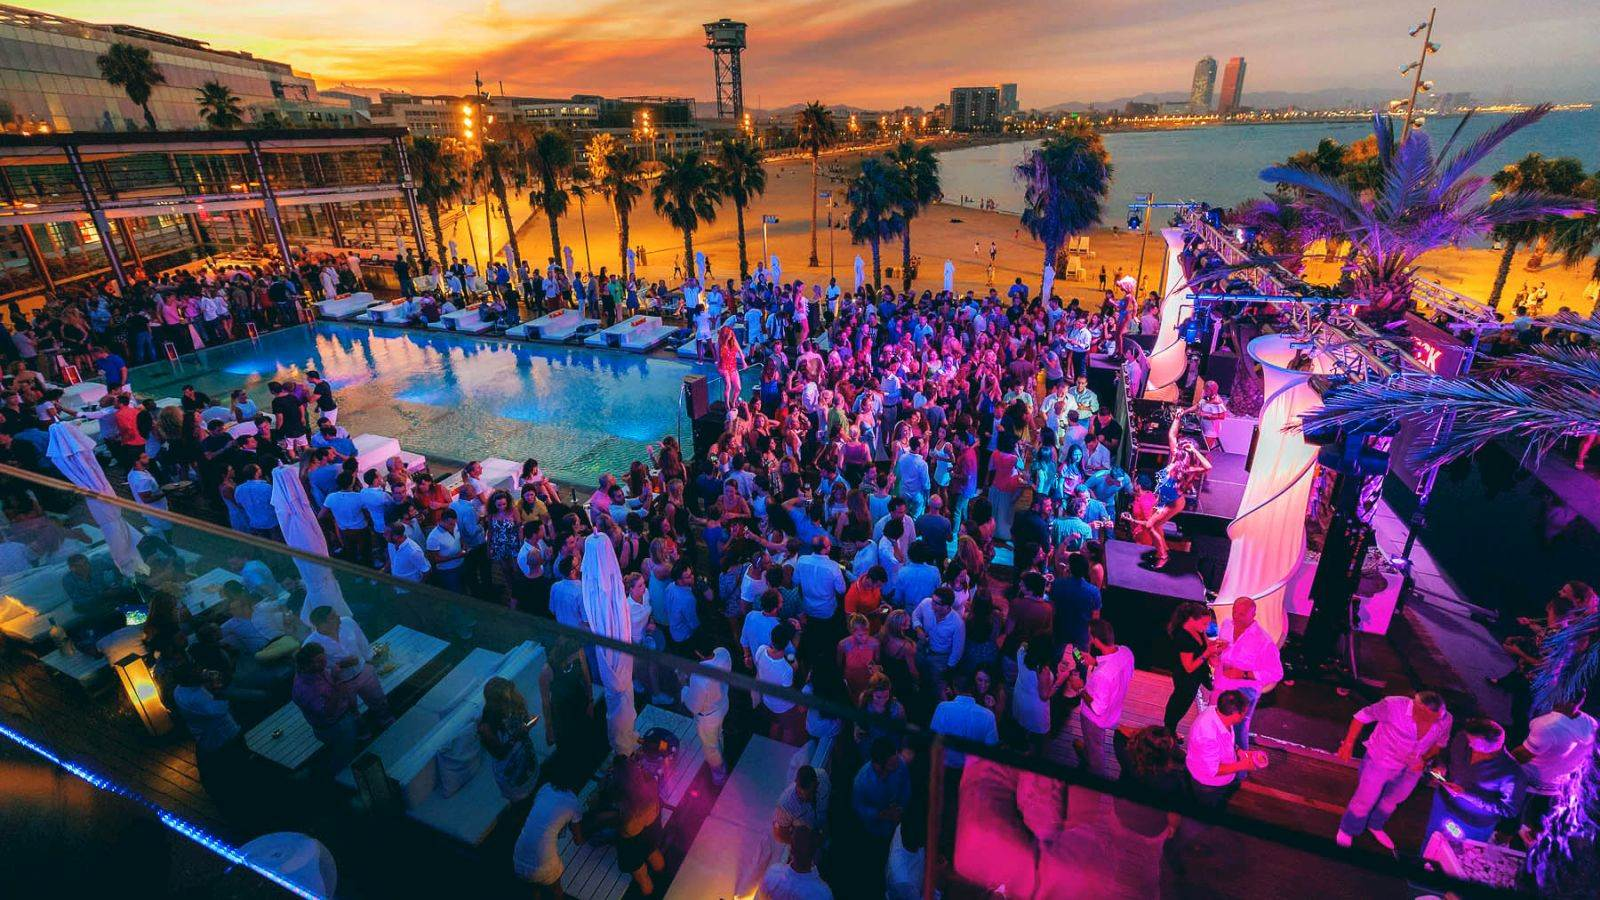 Wet Deck Summer Series at W Barcelona